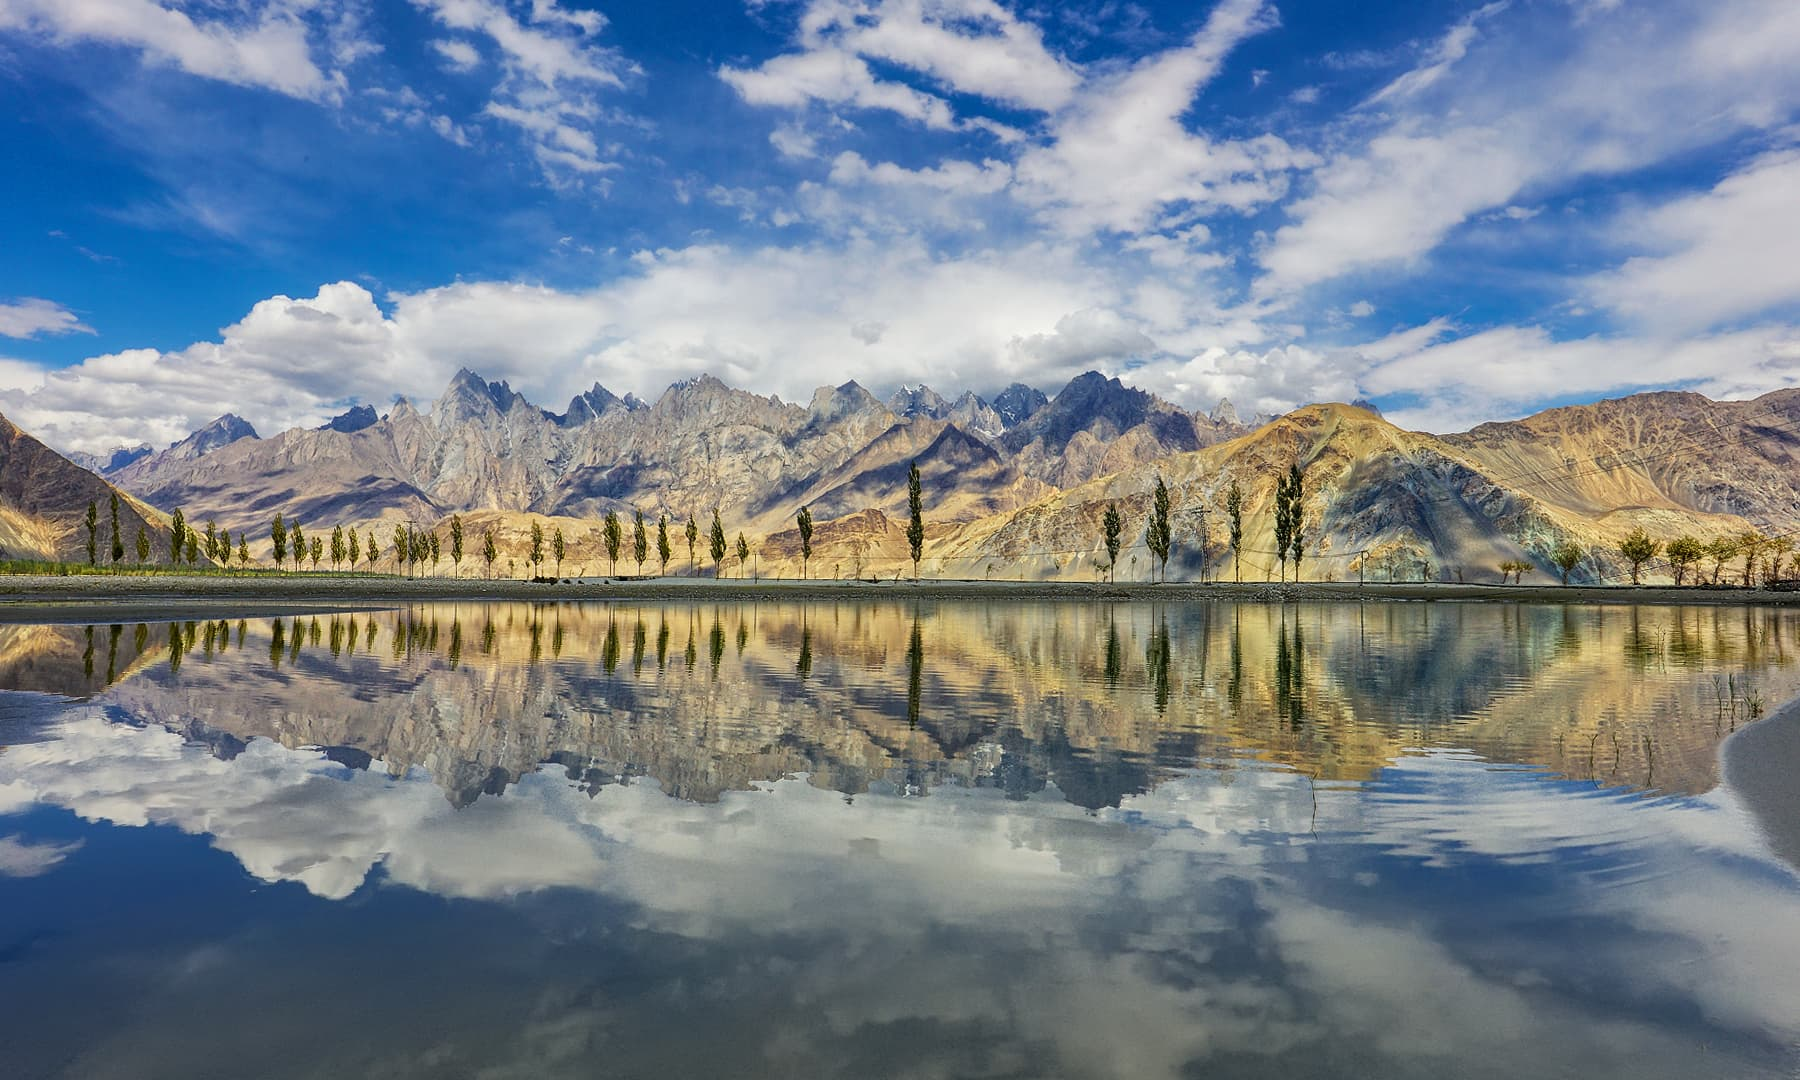 The snow-capped mountains in Skardu are a stunning backdrop to the lake.